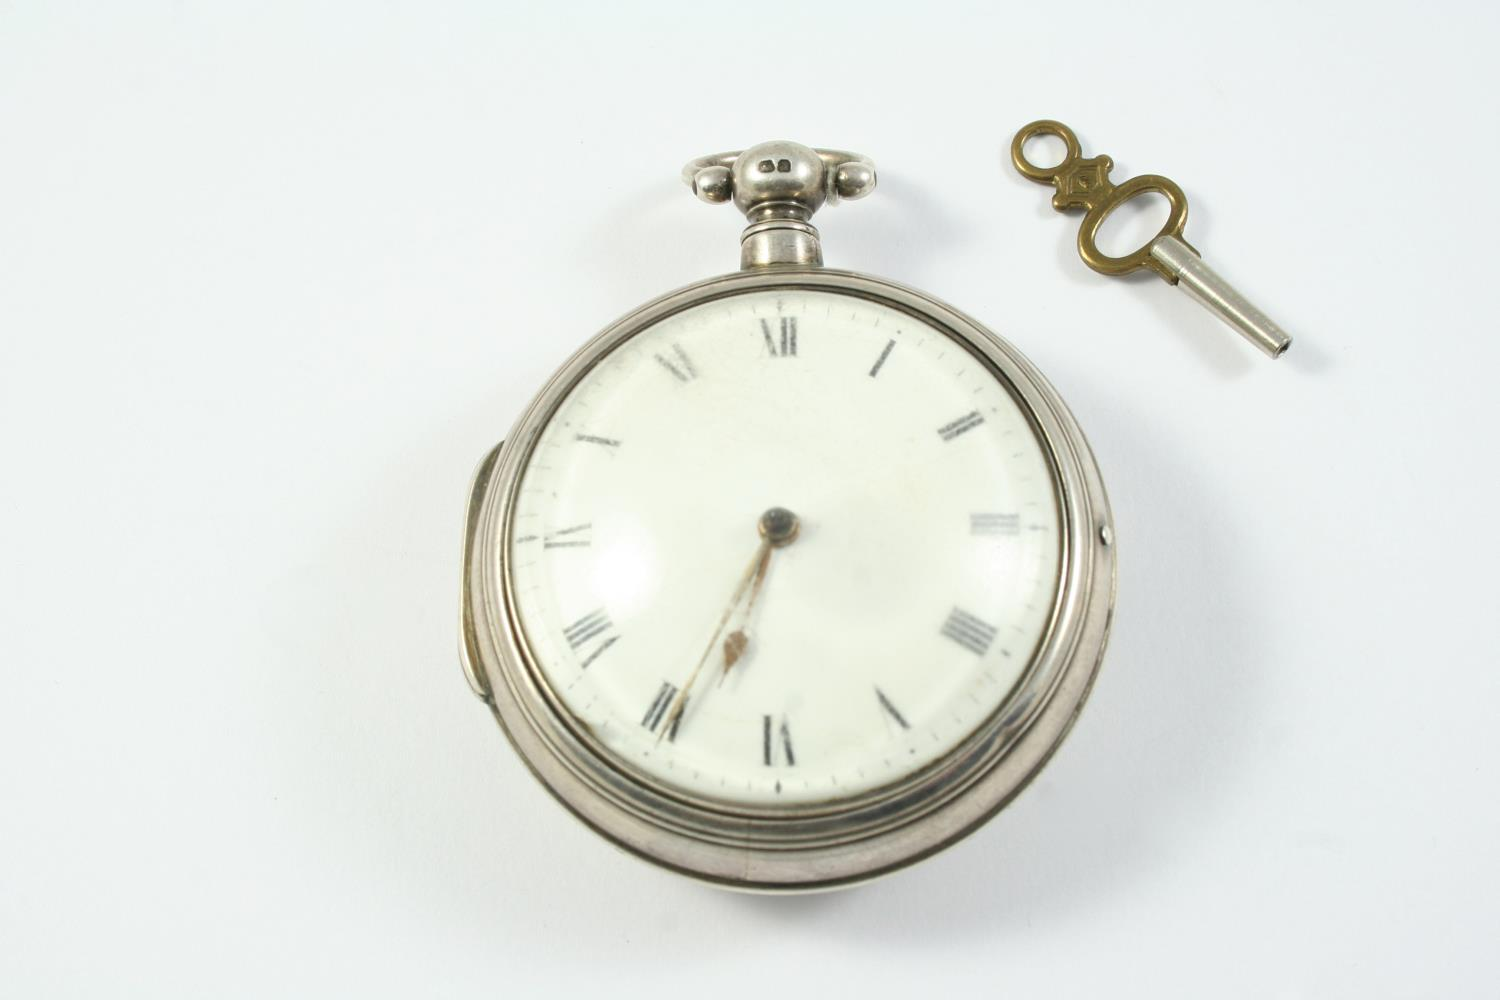 A SILVER PAIR CASED VERGE POCKET WATCH the white enamel dial with Roman numerals, the movement